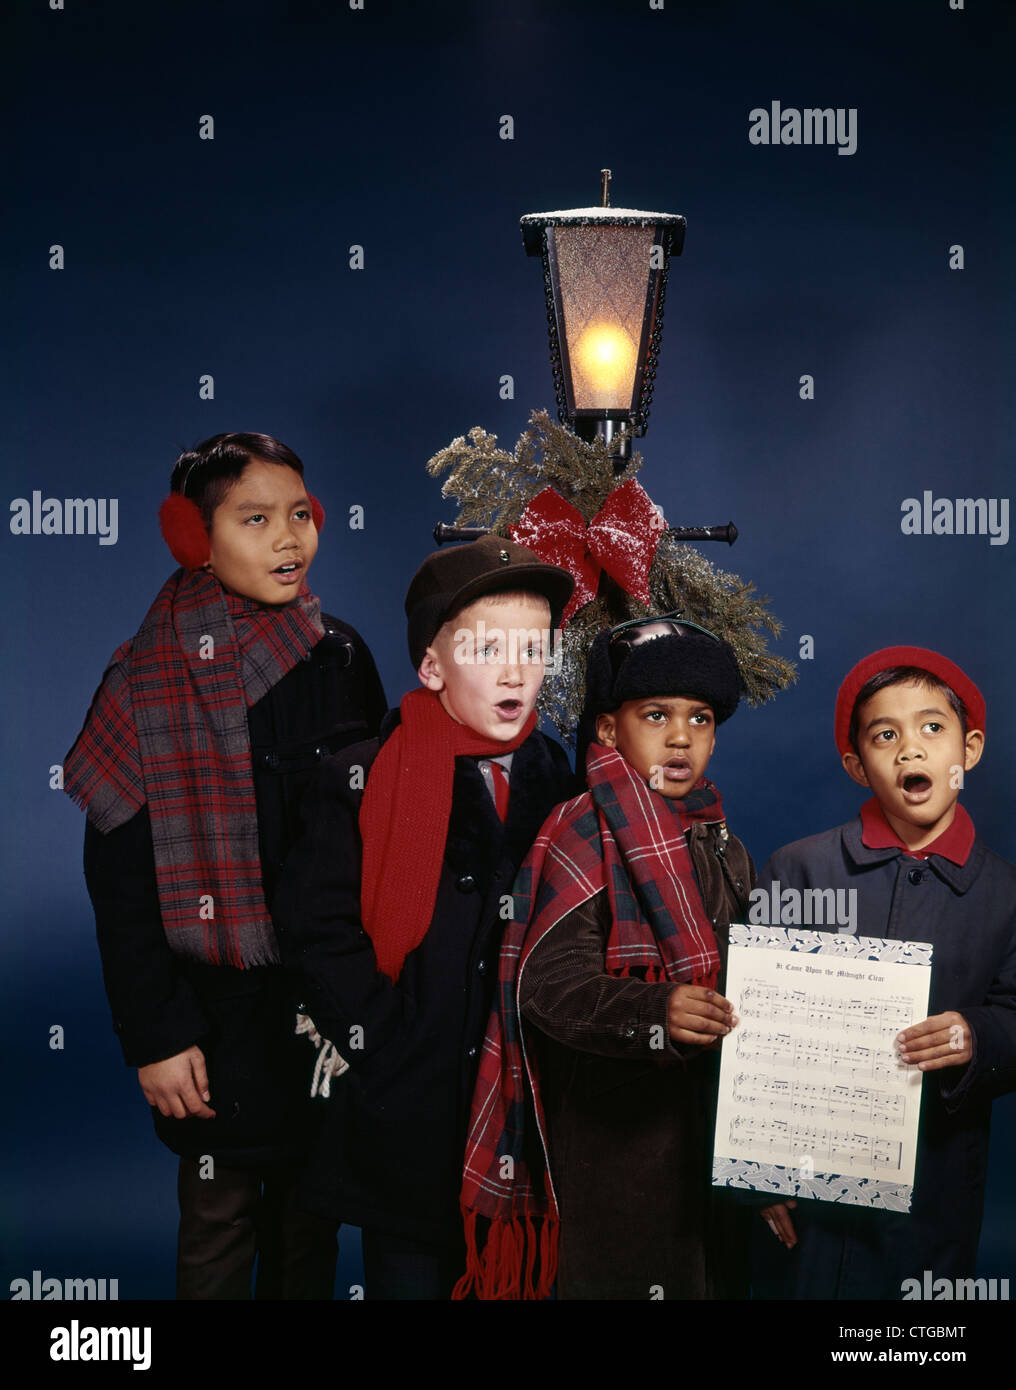 1960s GROUP JUVENILE BOYS SINGING CHRISTMAS CAROLS UNDER LAMP POST RETRO ETHNIC DIVERSITY MULTI-ETHNIC RACIAL MIX - Stock Image